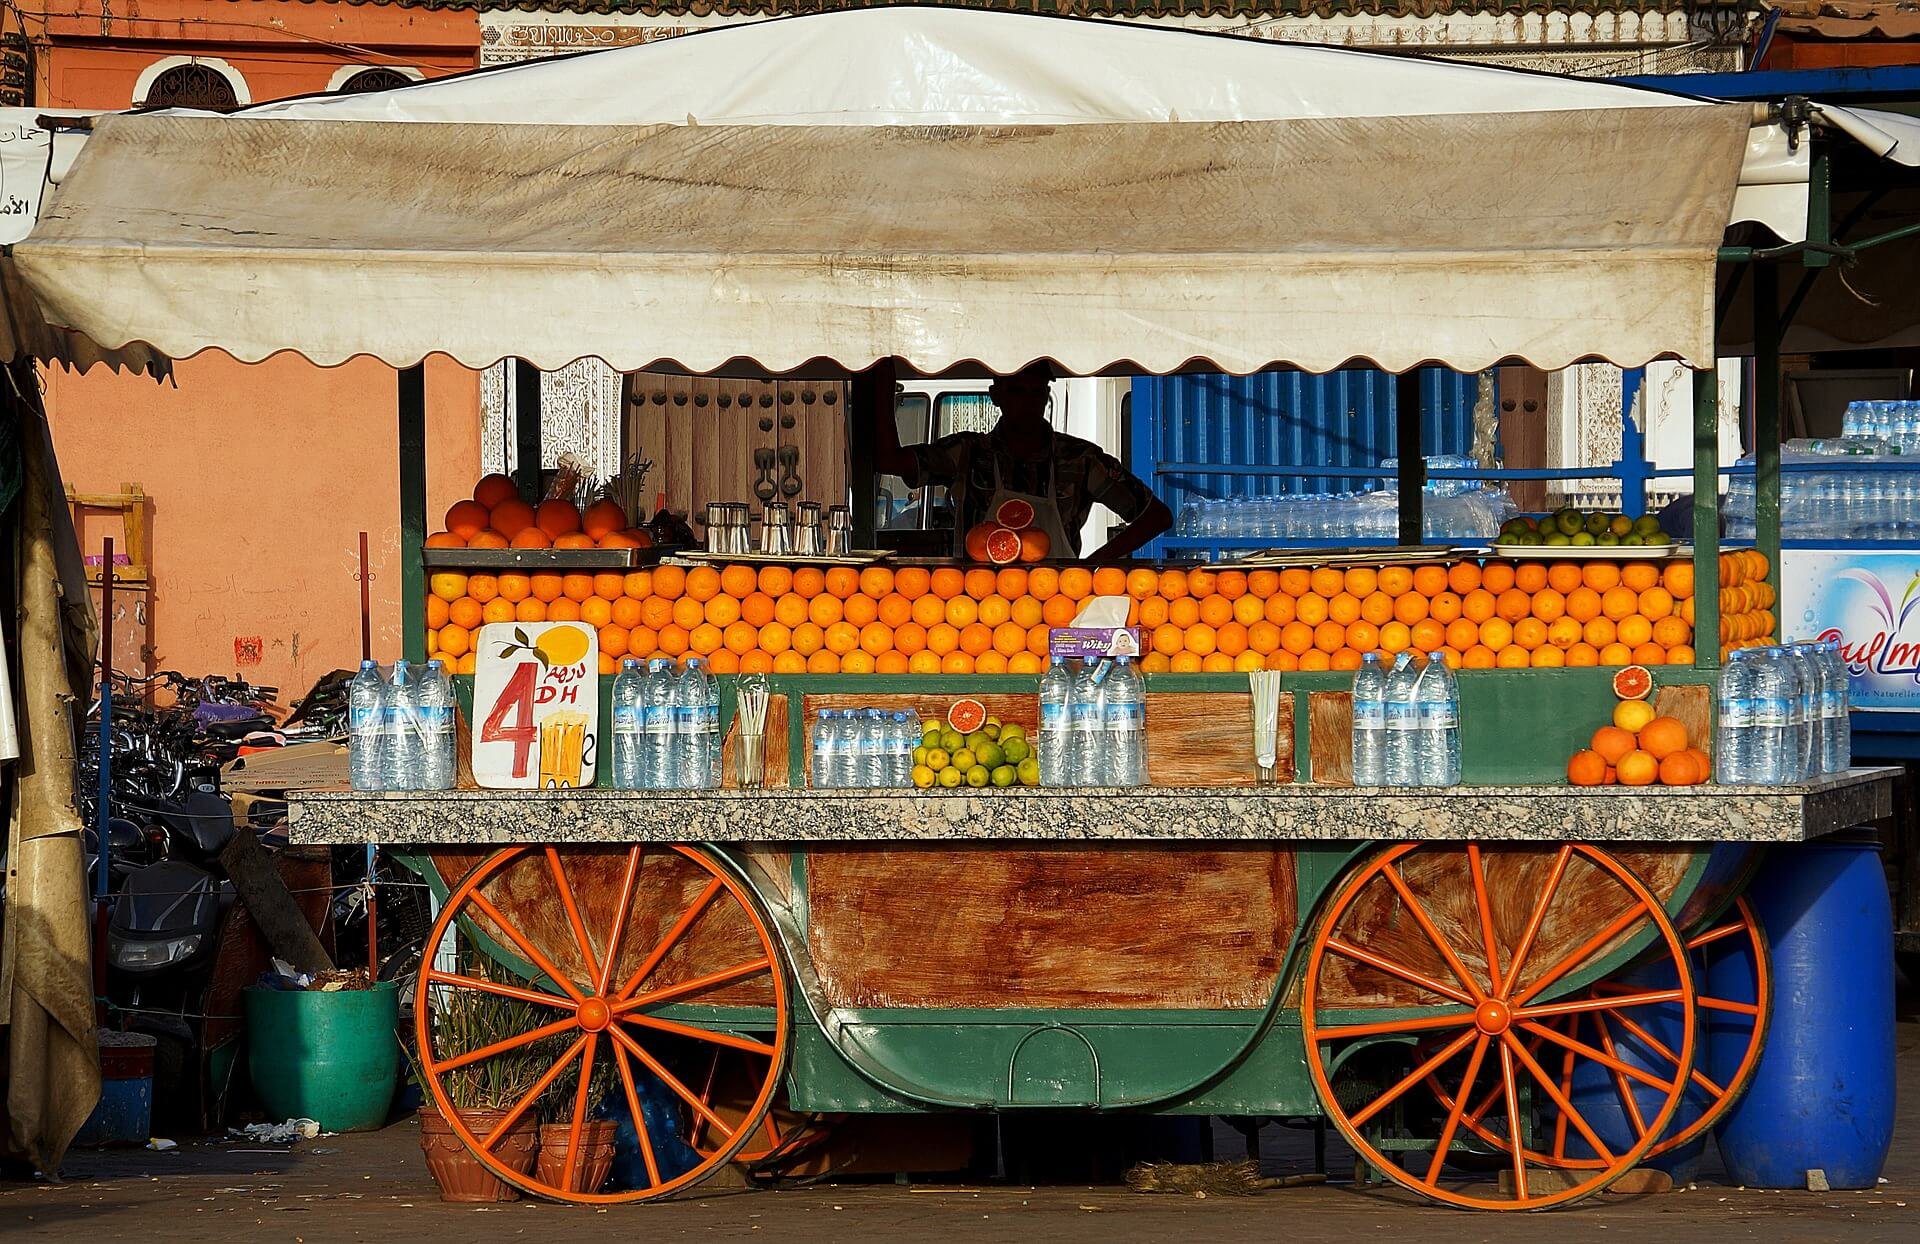 Orange juice stall in Jemaa el-Fna square, Marrakech